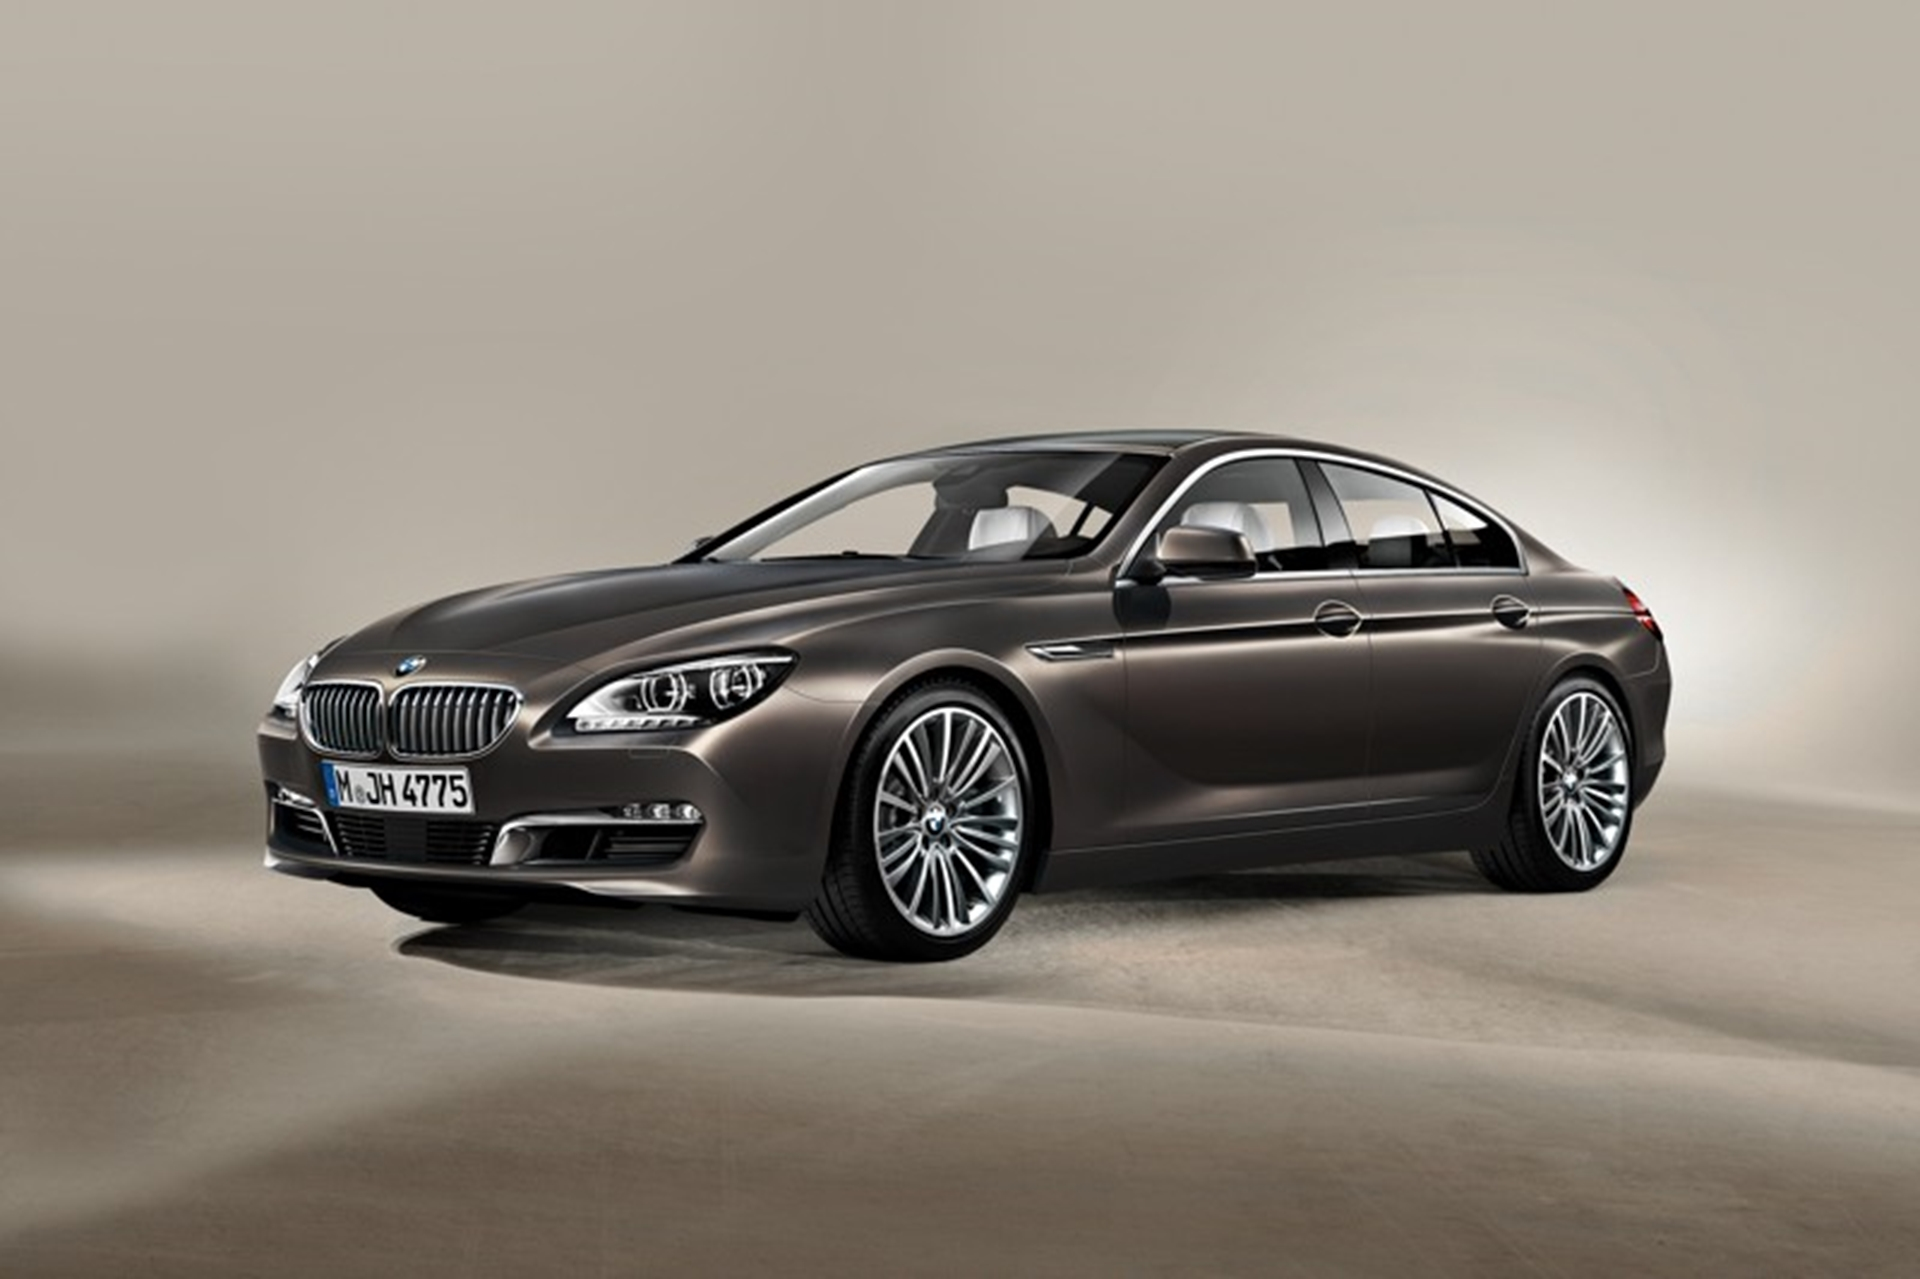 BMW 6-Series Front 2013